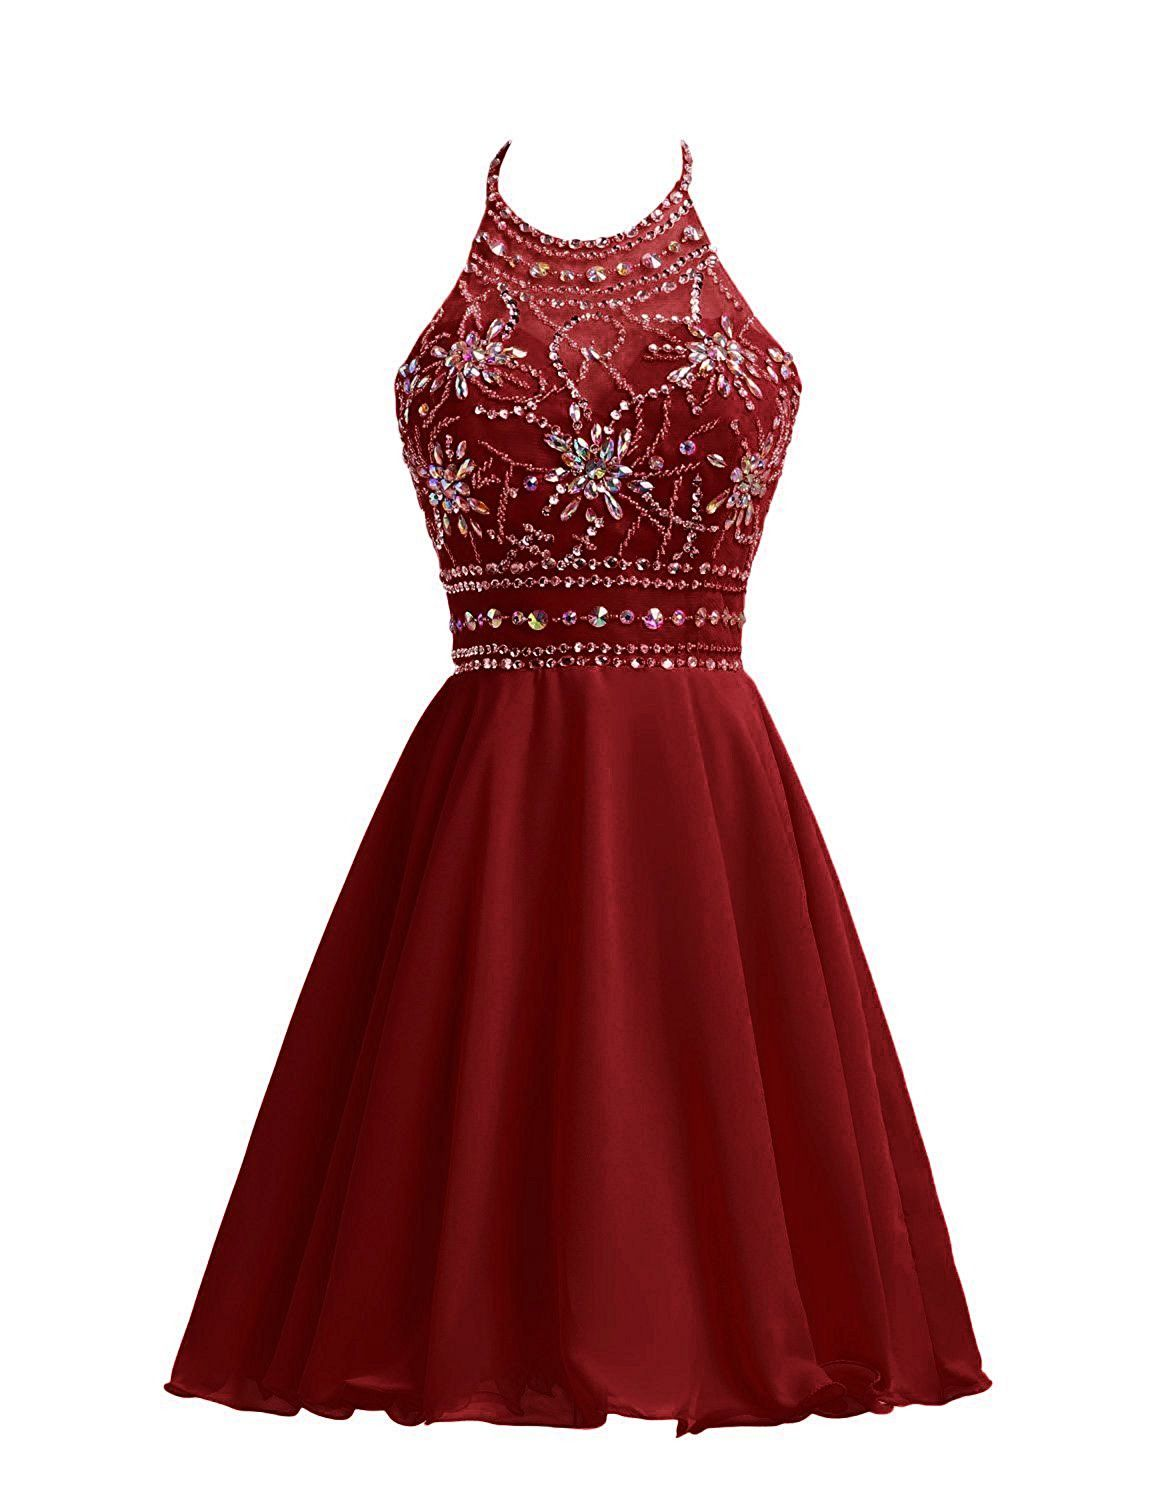 Wine Red Short Homecoming Dresses with Sparkle Tops, Prom Dress ...